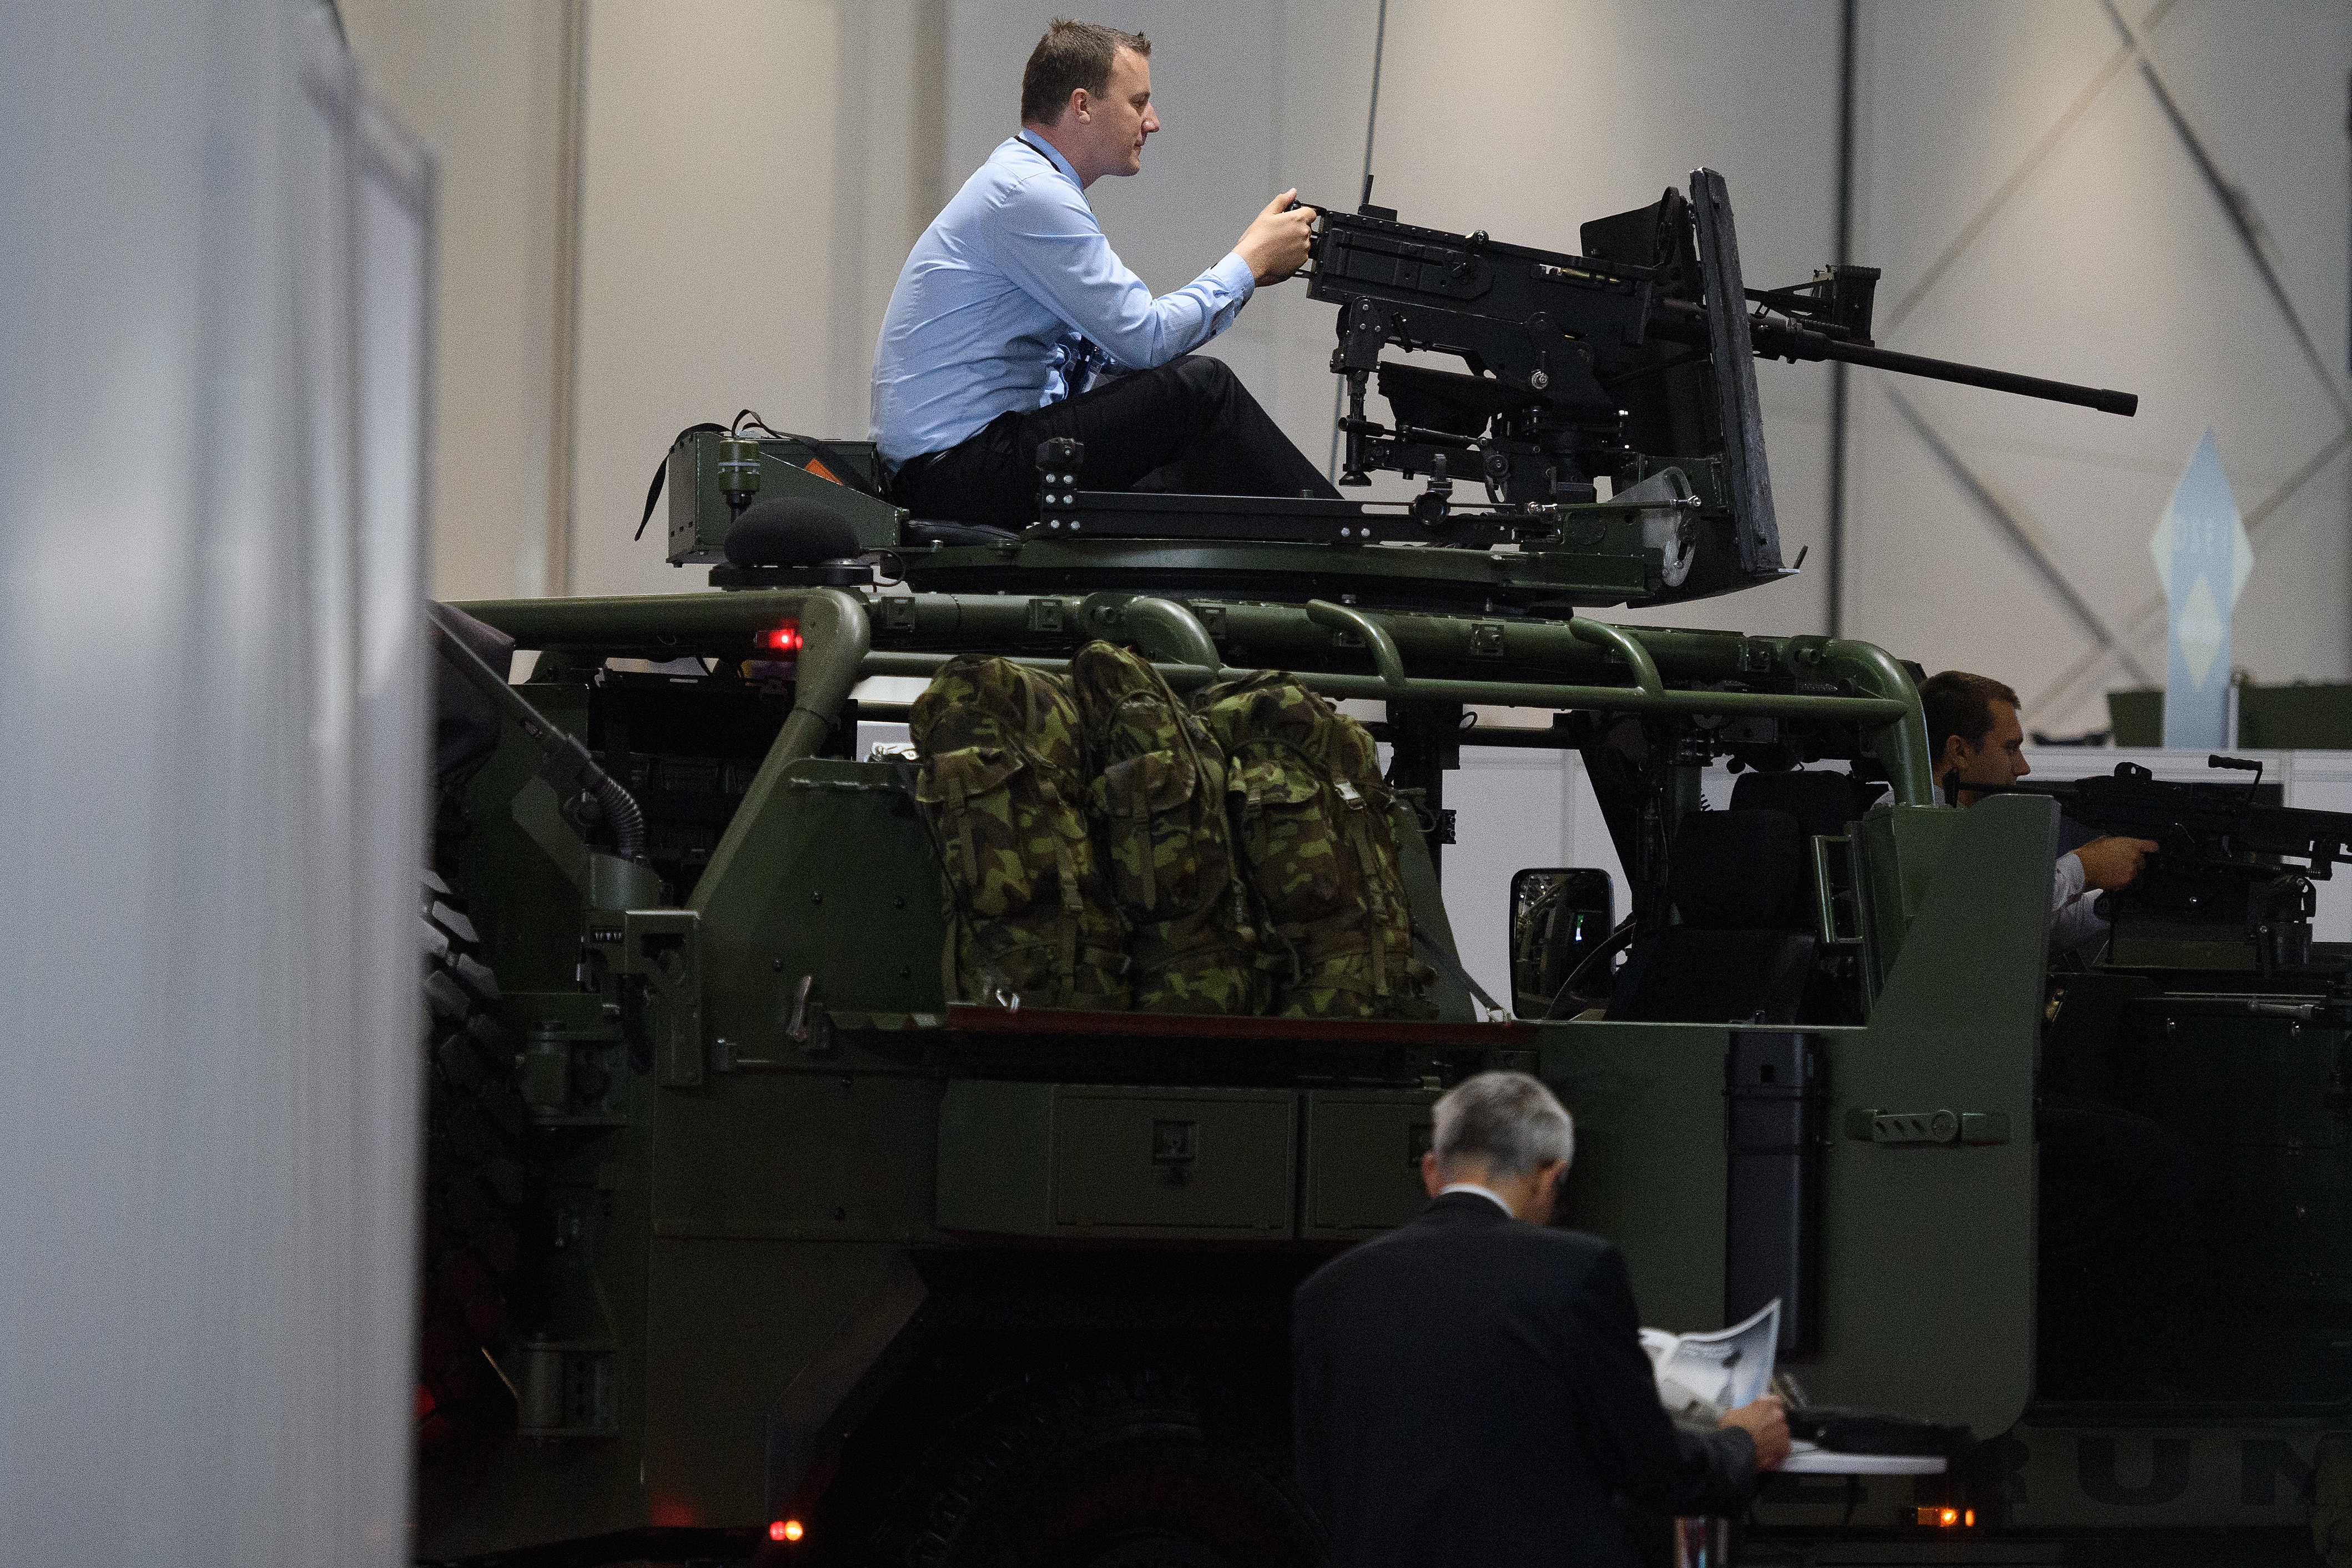 A man tests the gun mounted on an SVOS Perun armored vehicle on Sept. 11, 2019, at DSEI. (Leon Neal/Getty Images)